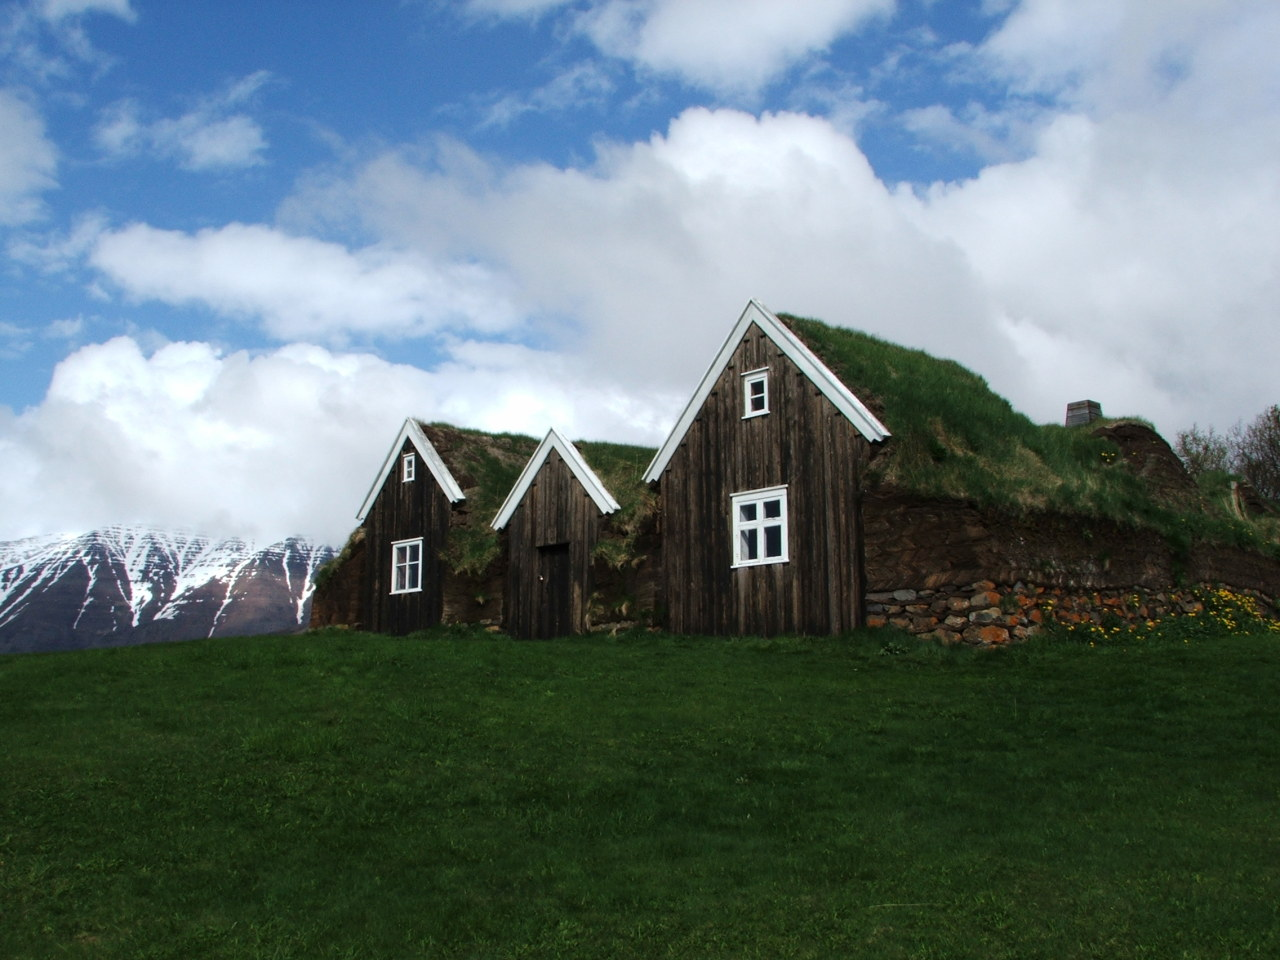 Cabins in Hólar, Iceland. Contributed by Shawna Nelson.